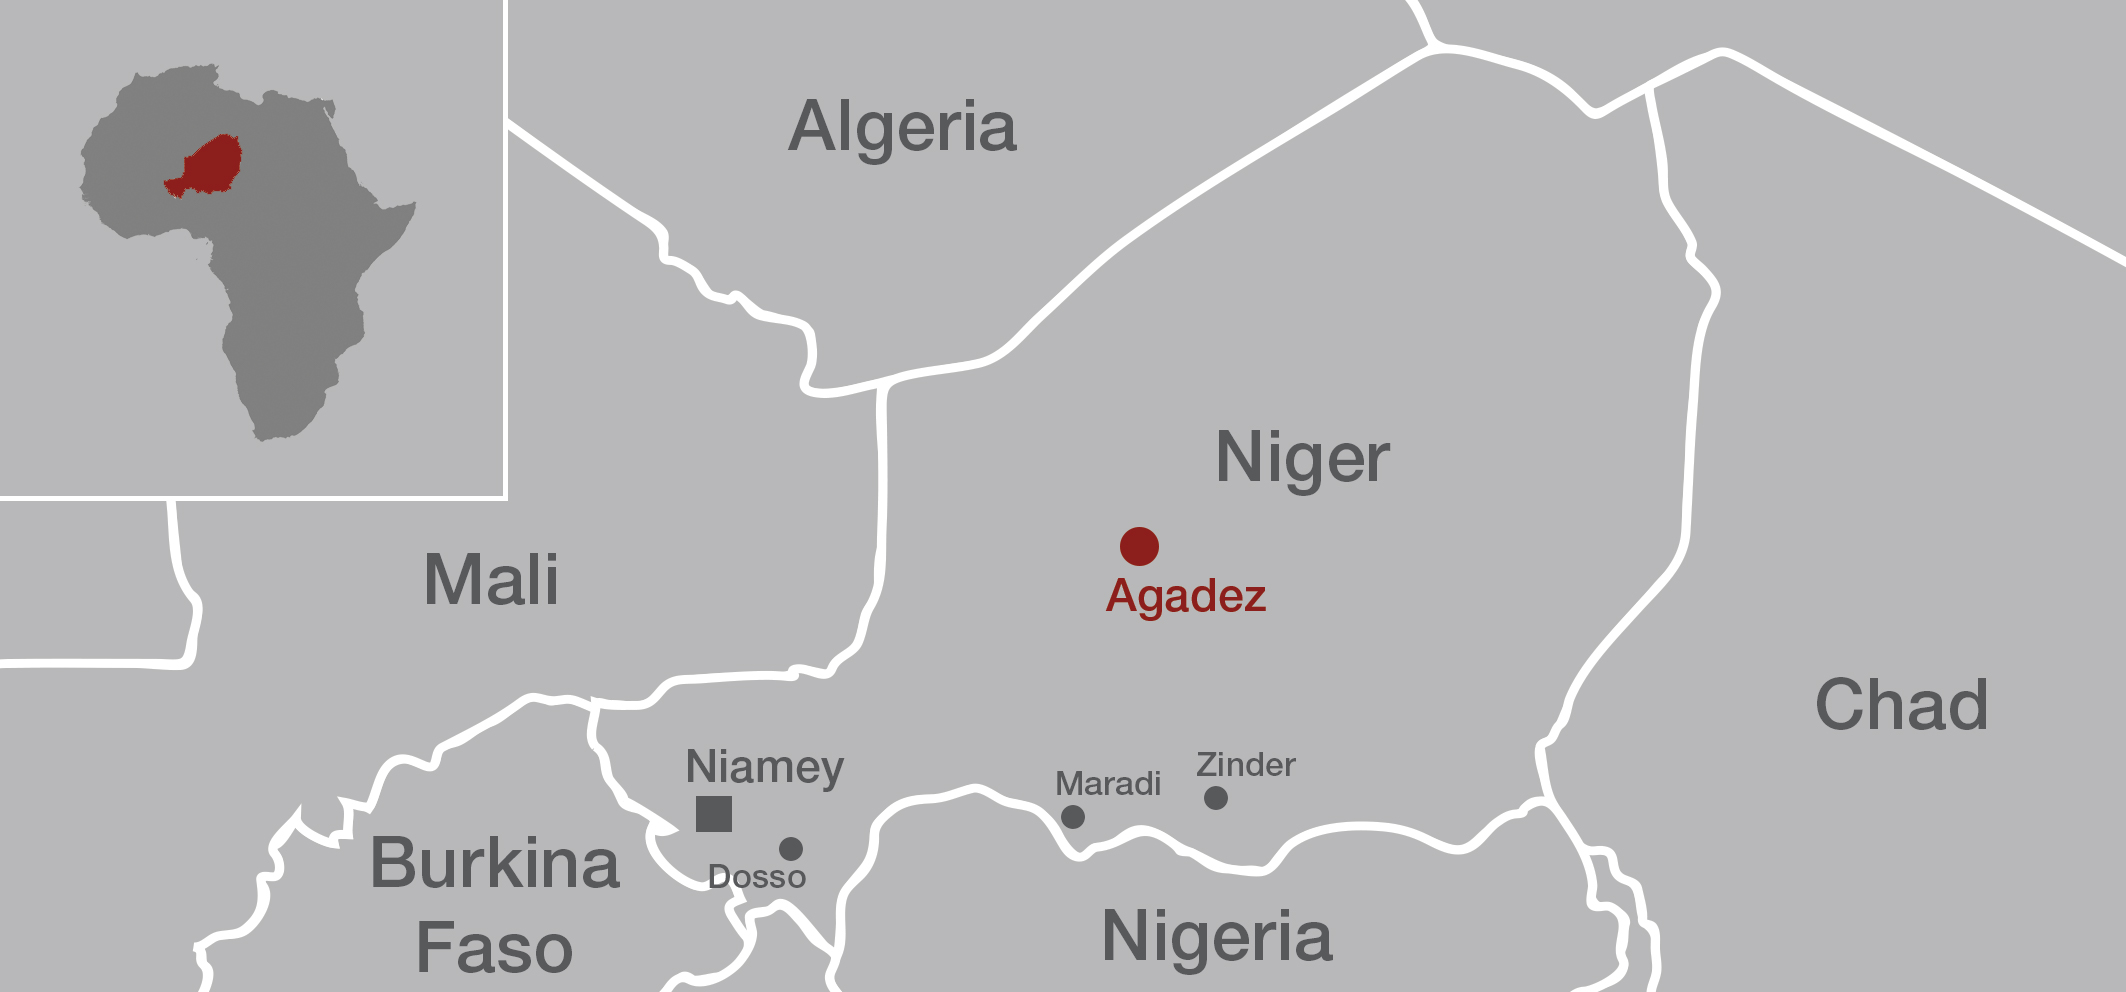 Agadez in Niger